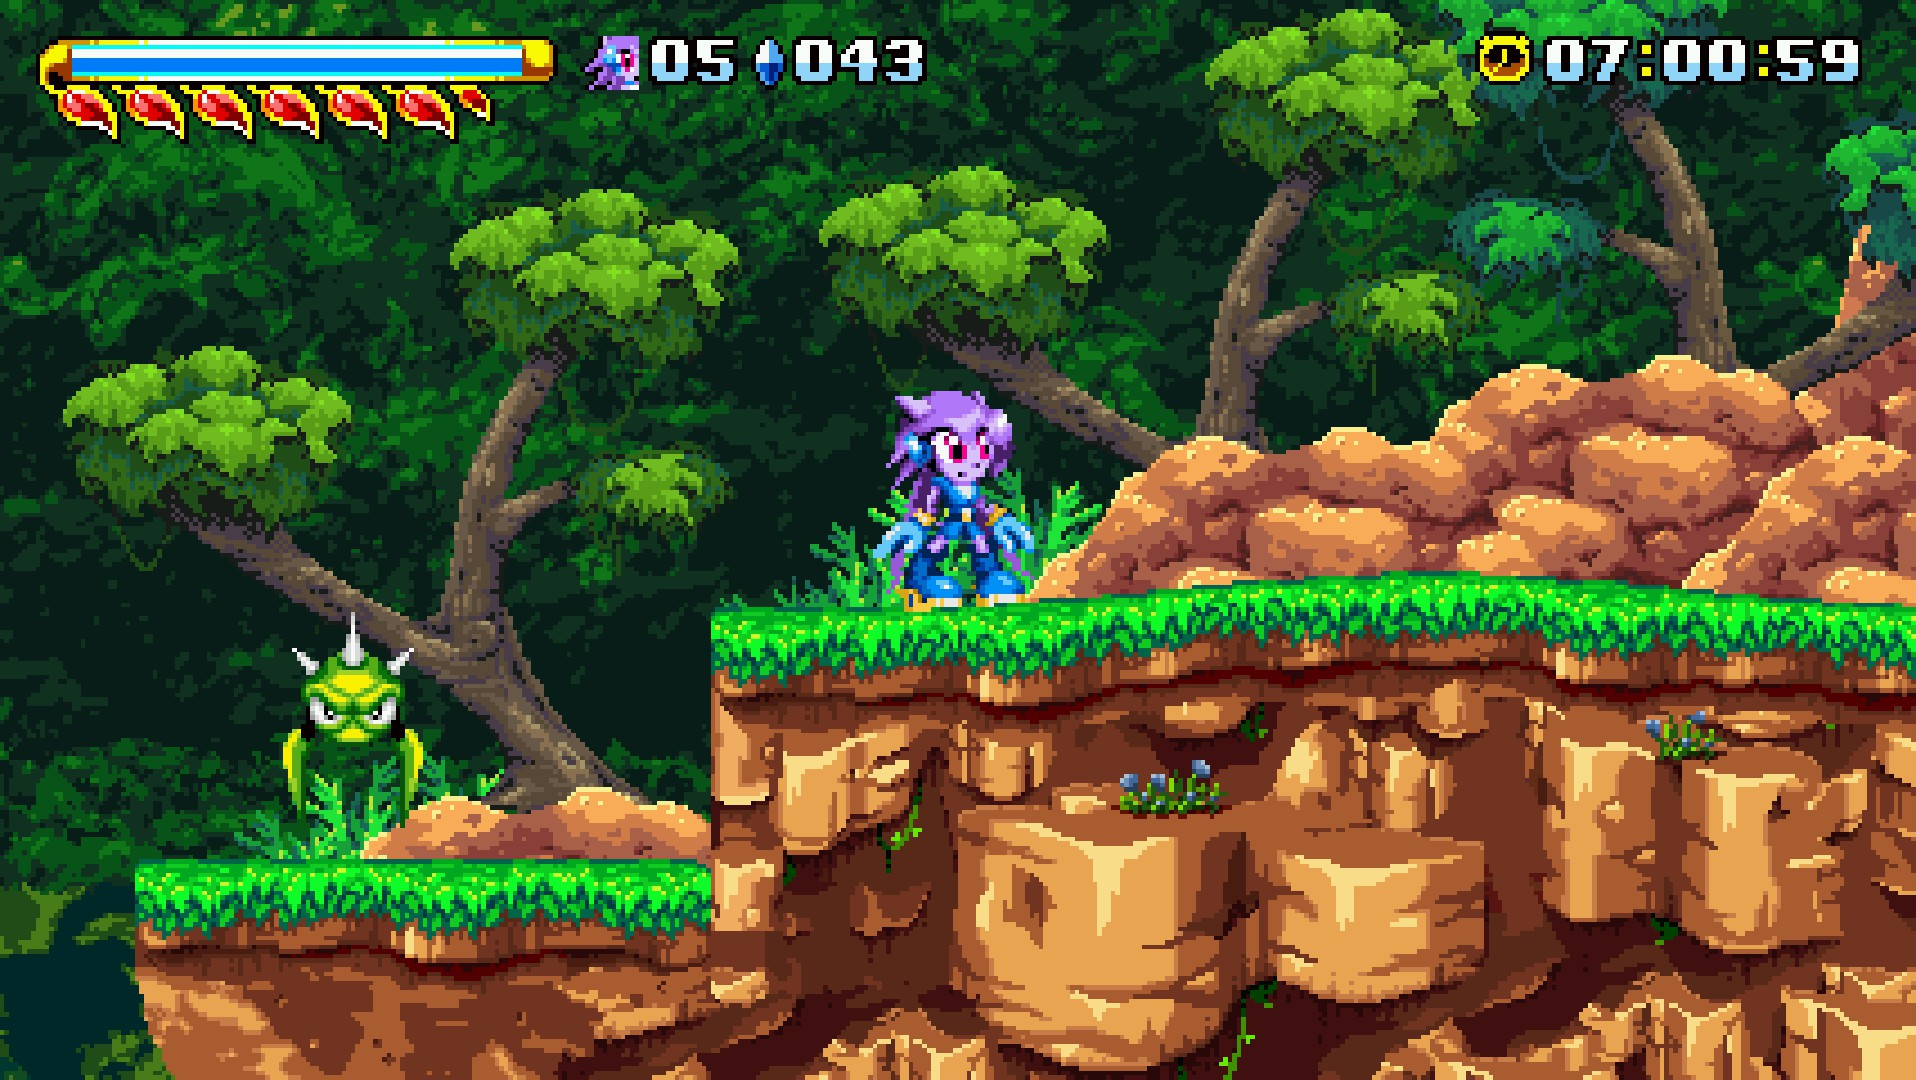 Freedom Planet (Steam Key, Region Free)